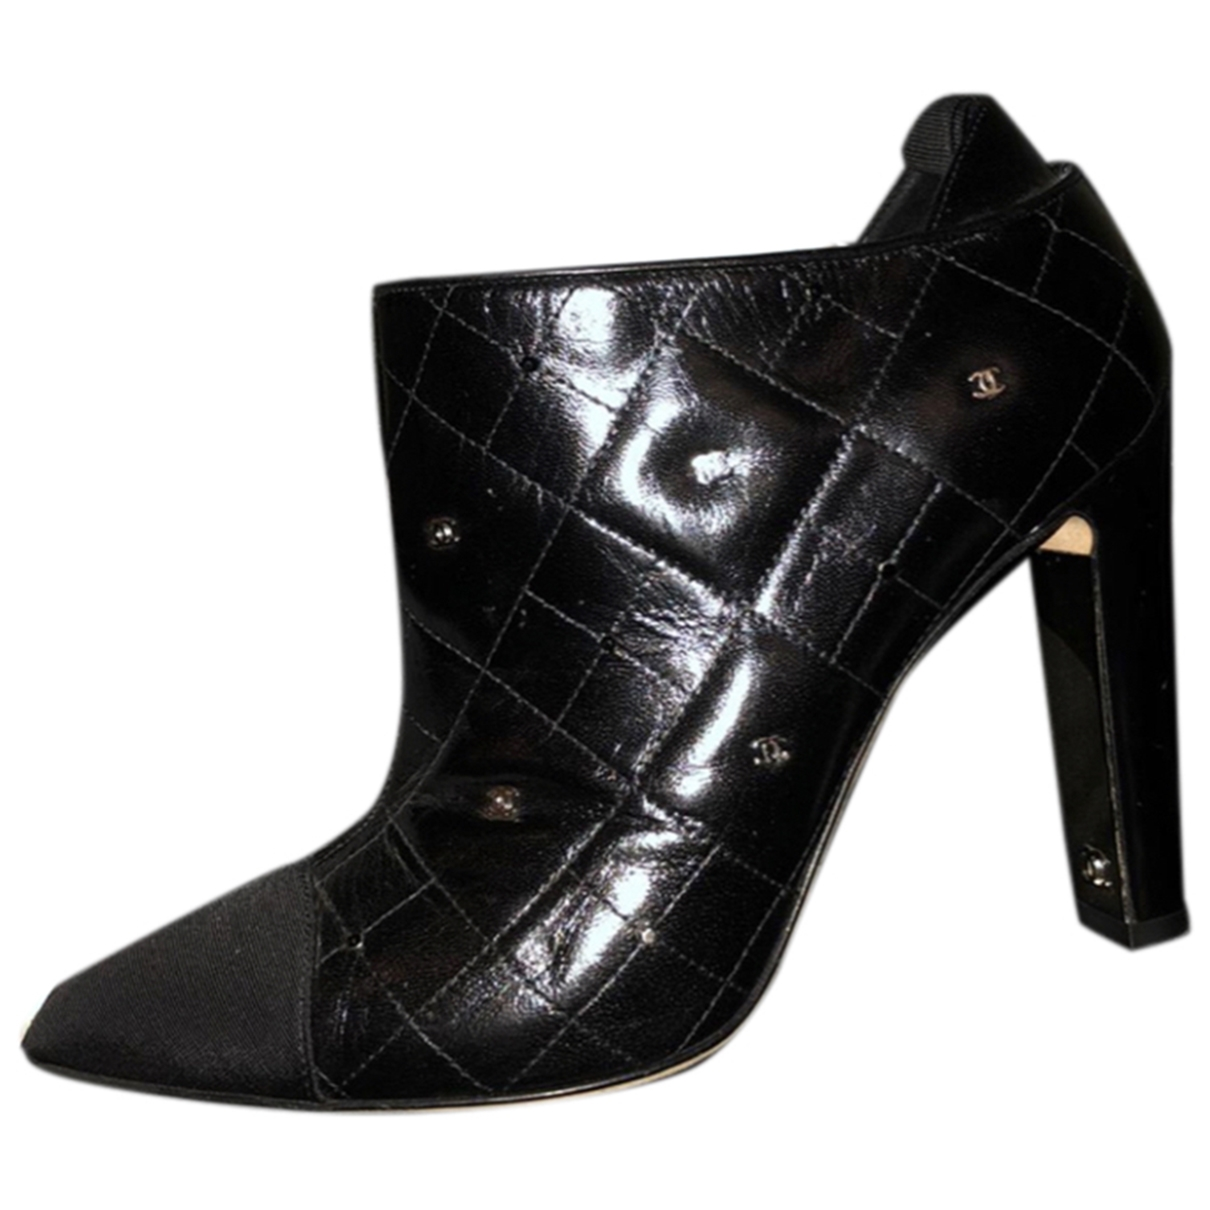 Chanel \N Black Leather Ankle boots for Women 38 EU